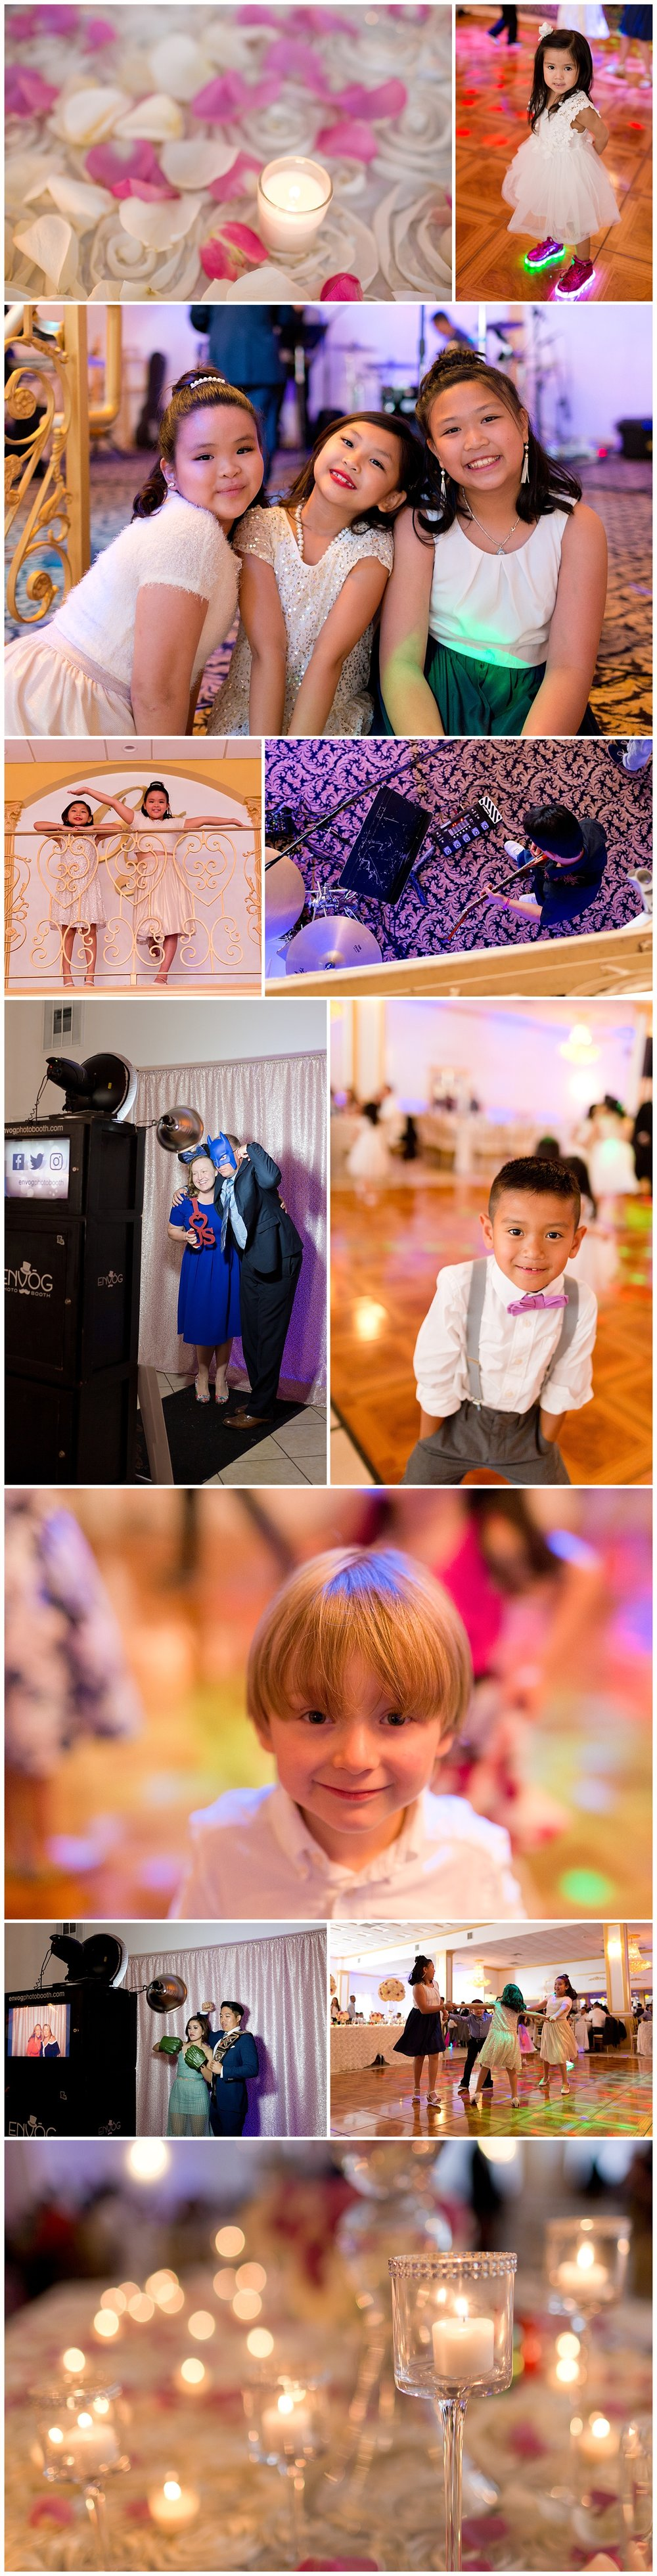 wedding reception photos with candles, kids on dance floor, photo booth